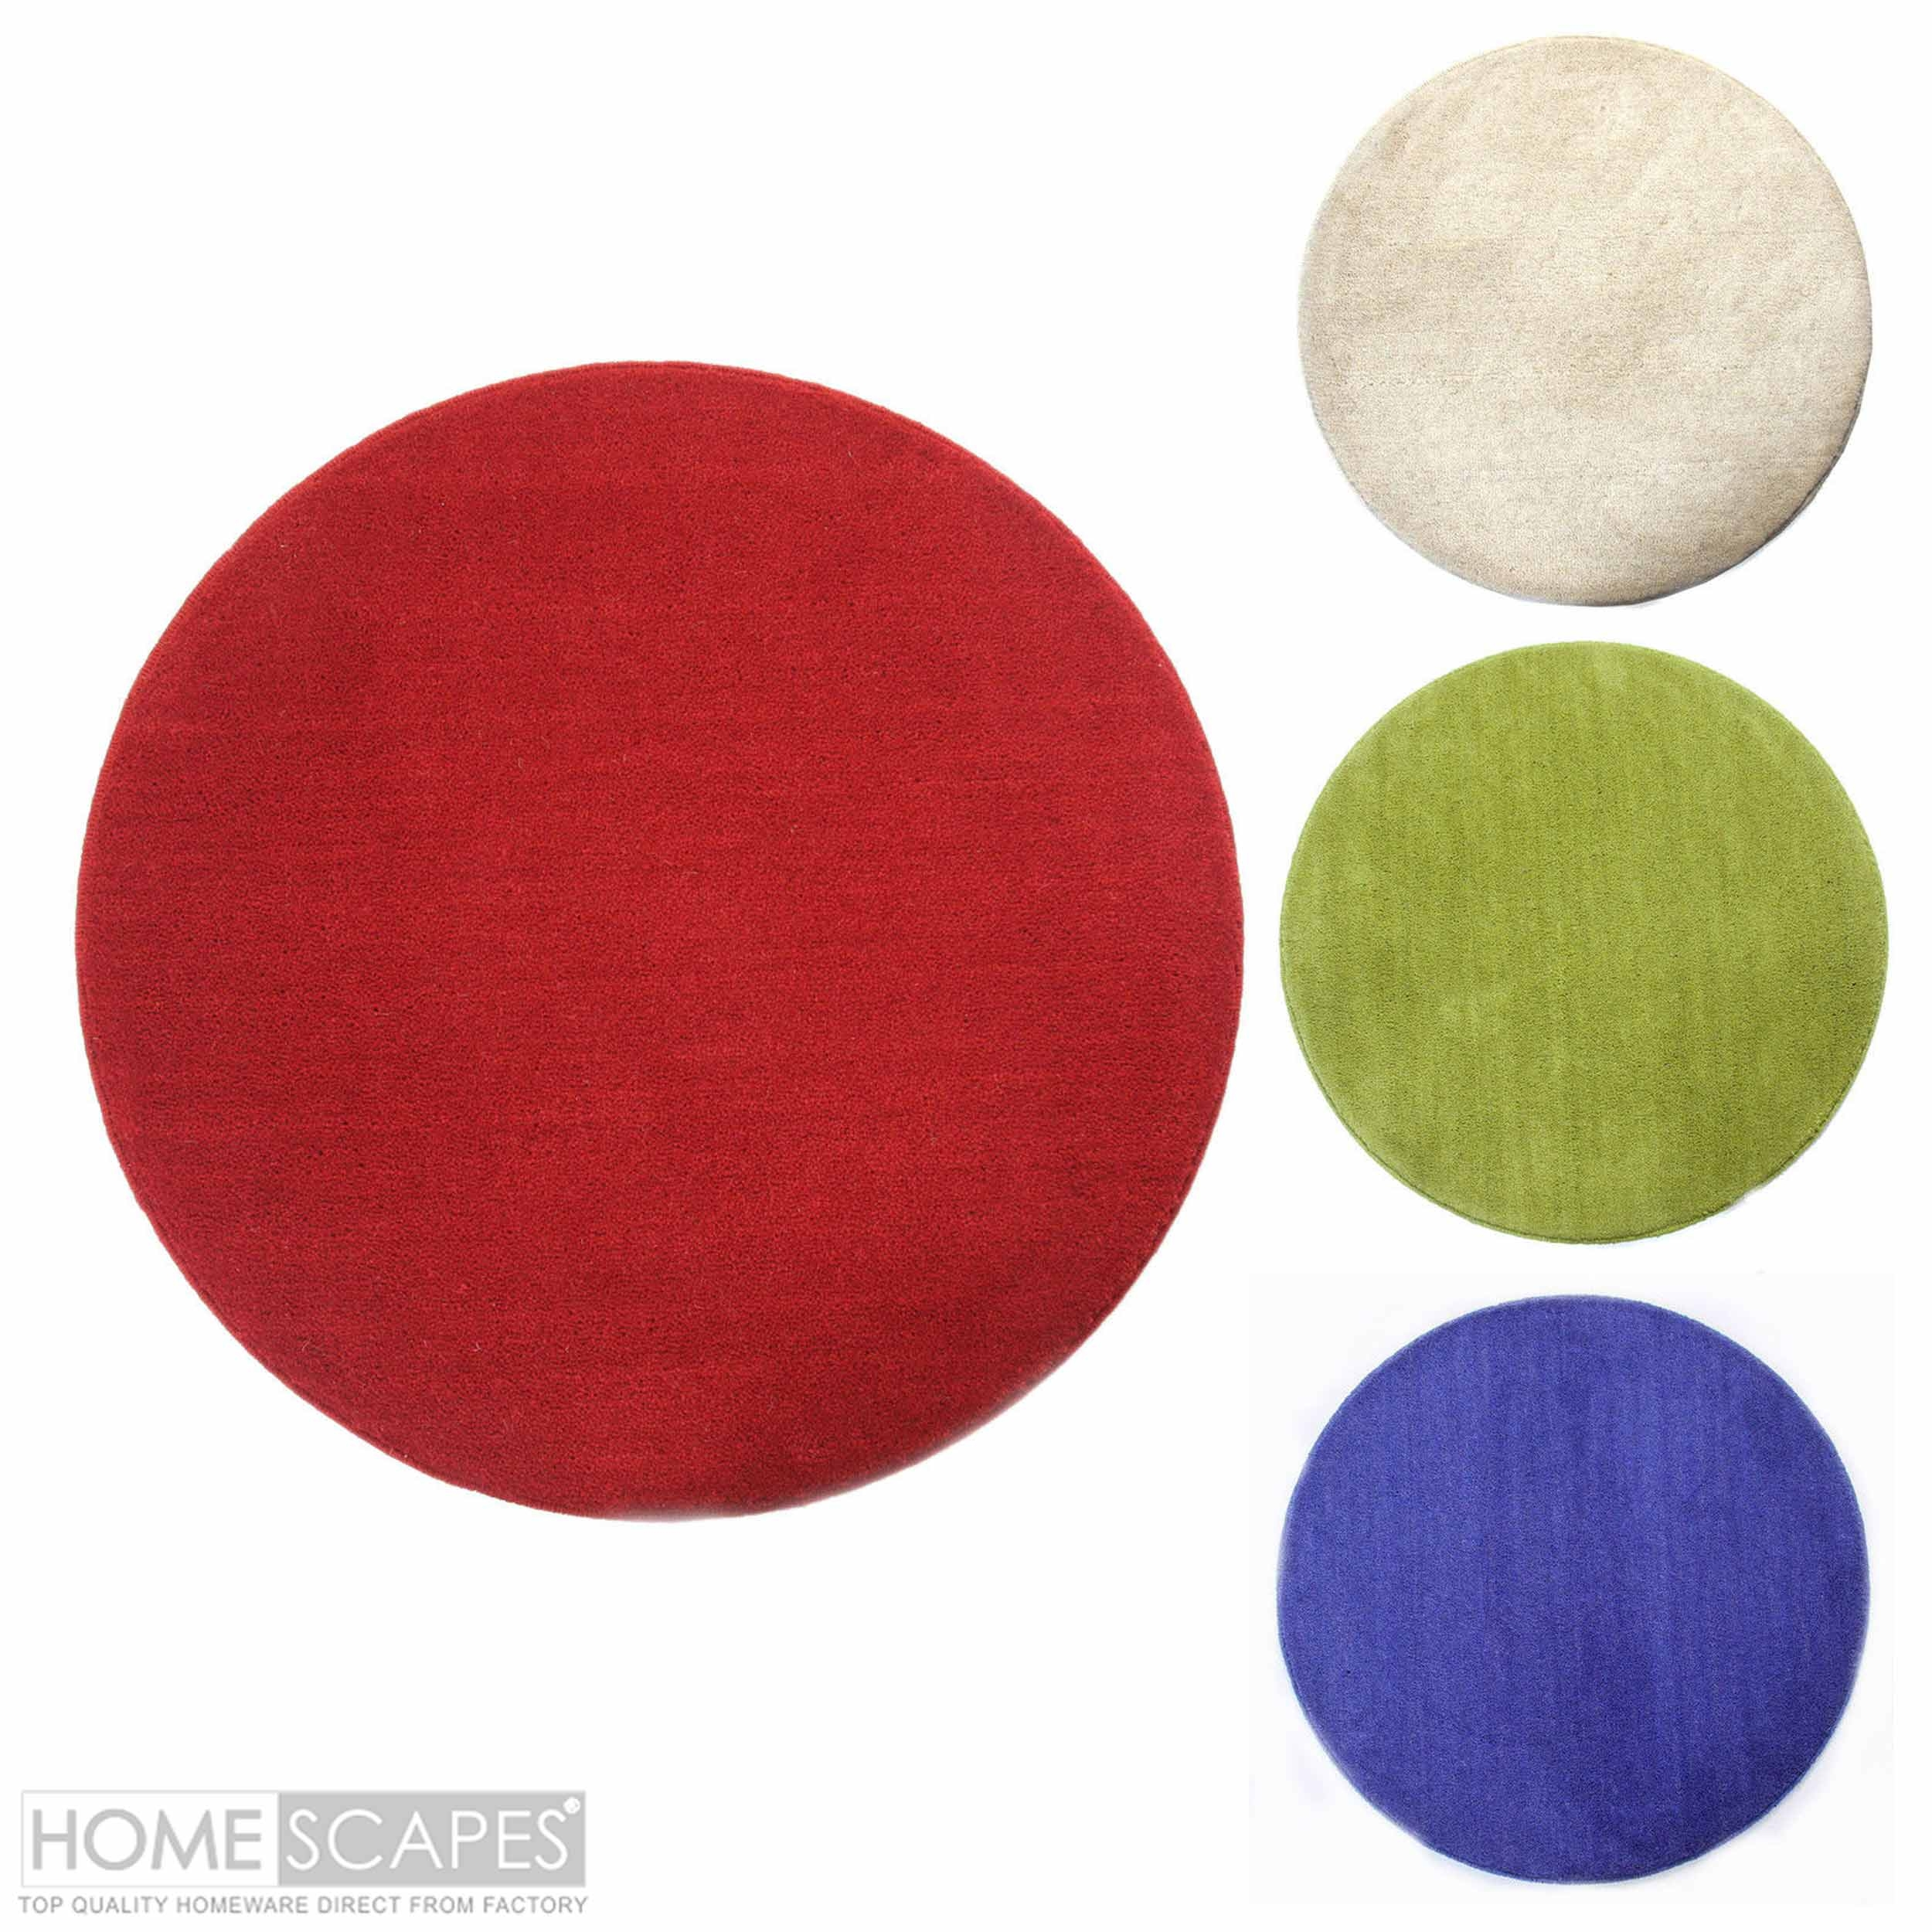 Small Round Rugs Uk Roselawnlutheran Regarding Rounds Rugs (View 14 of 15)